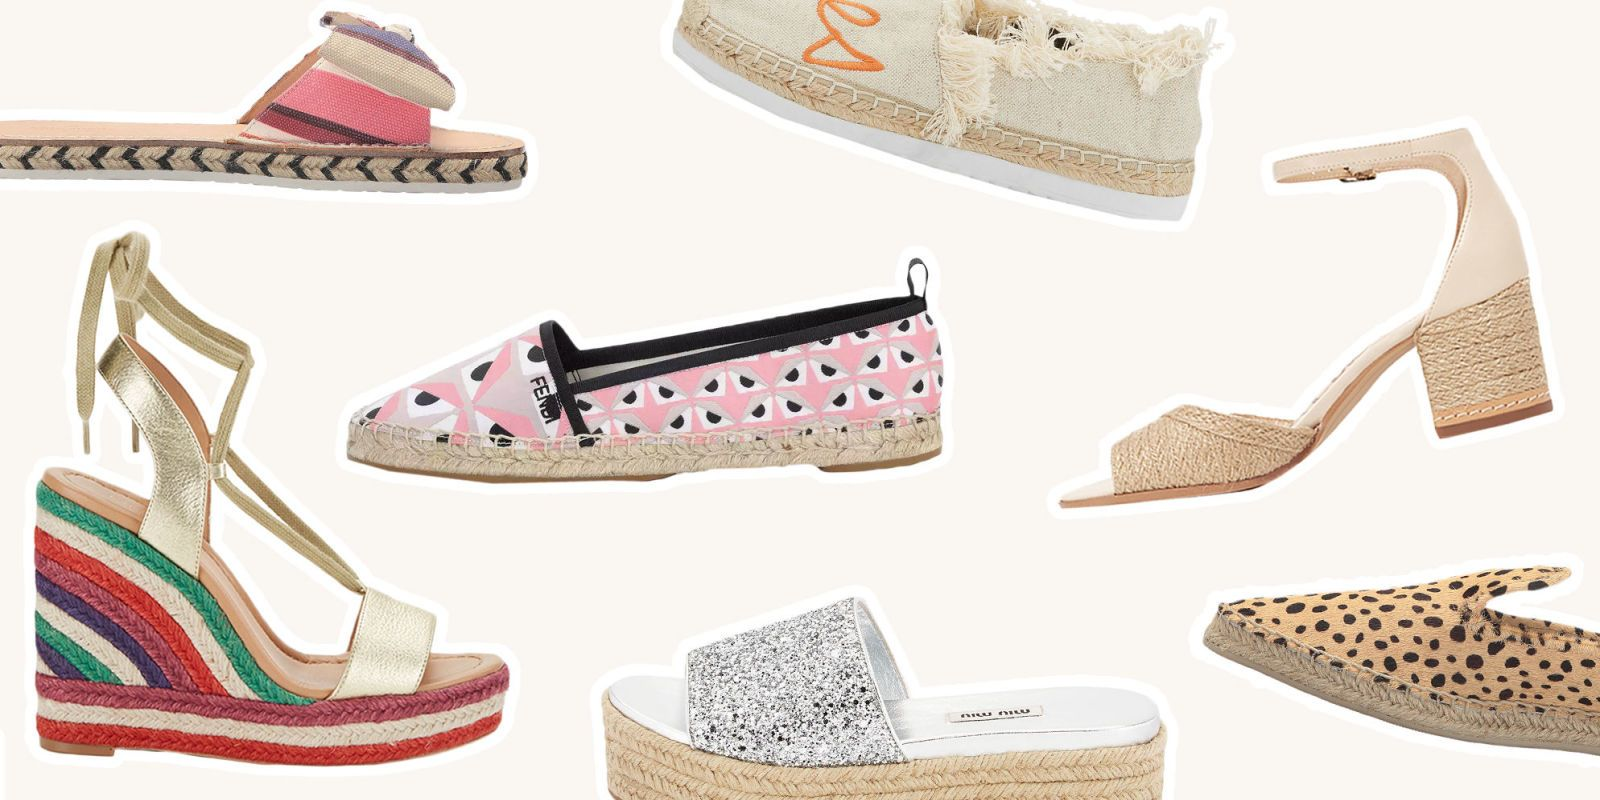 Top Espadrille Wedges and Sandals for Women